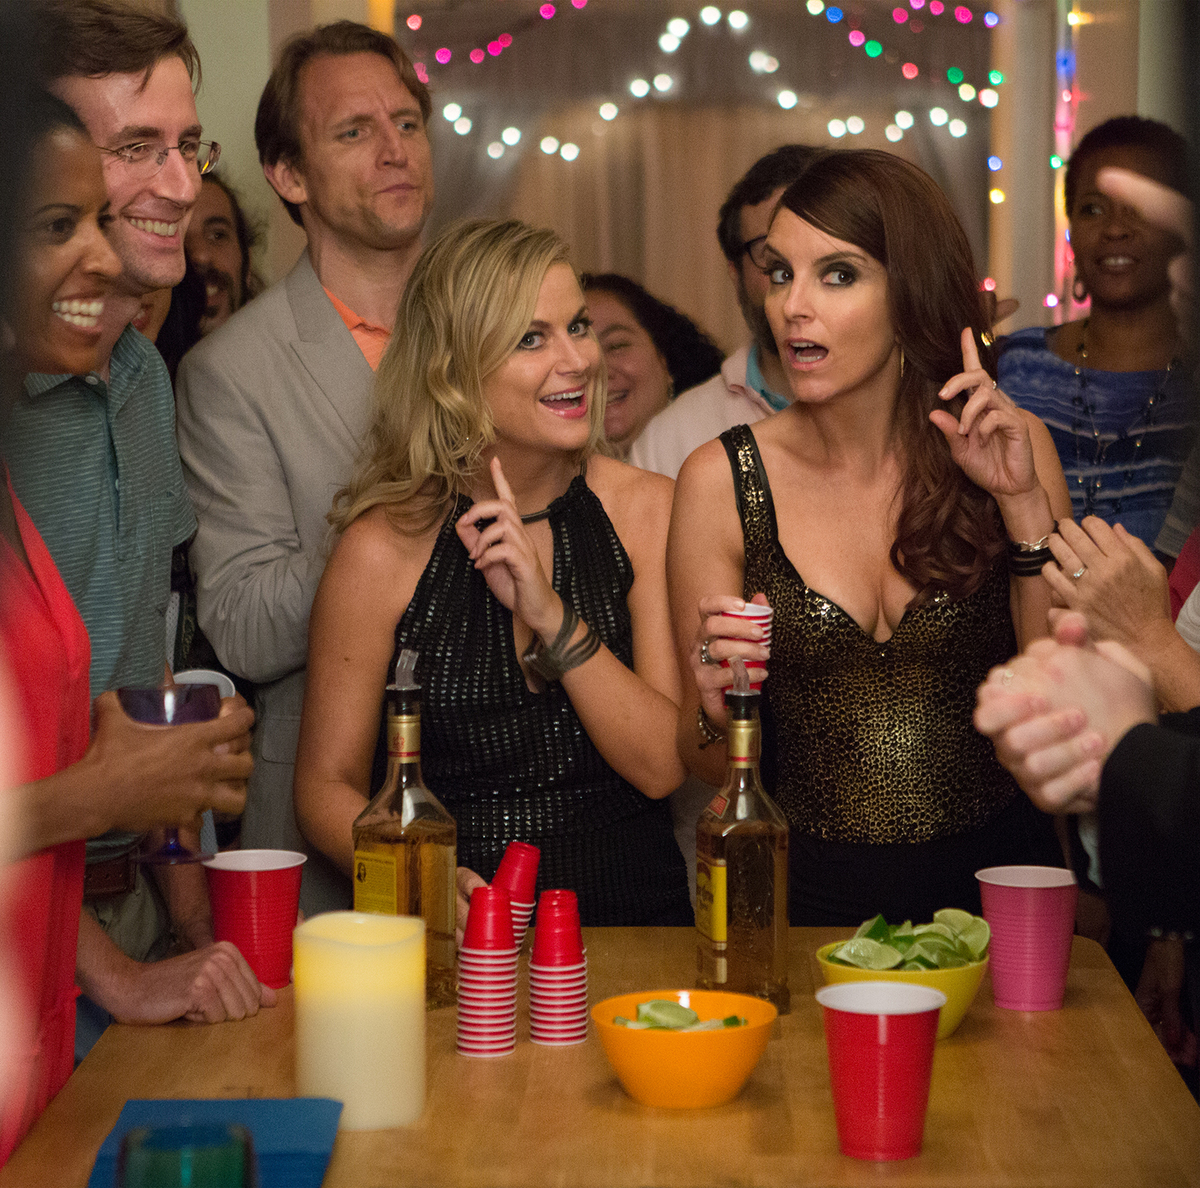 In 'Sisters,' Amy Poehler and Tina Fey come home to clean out their childhood bedroom before the family house is sold. They decide to throw one last party for their high school classmates. (K. C. Bailey/2015 Universal Studios)